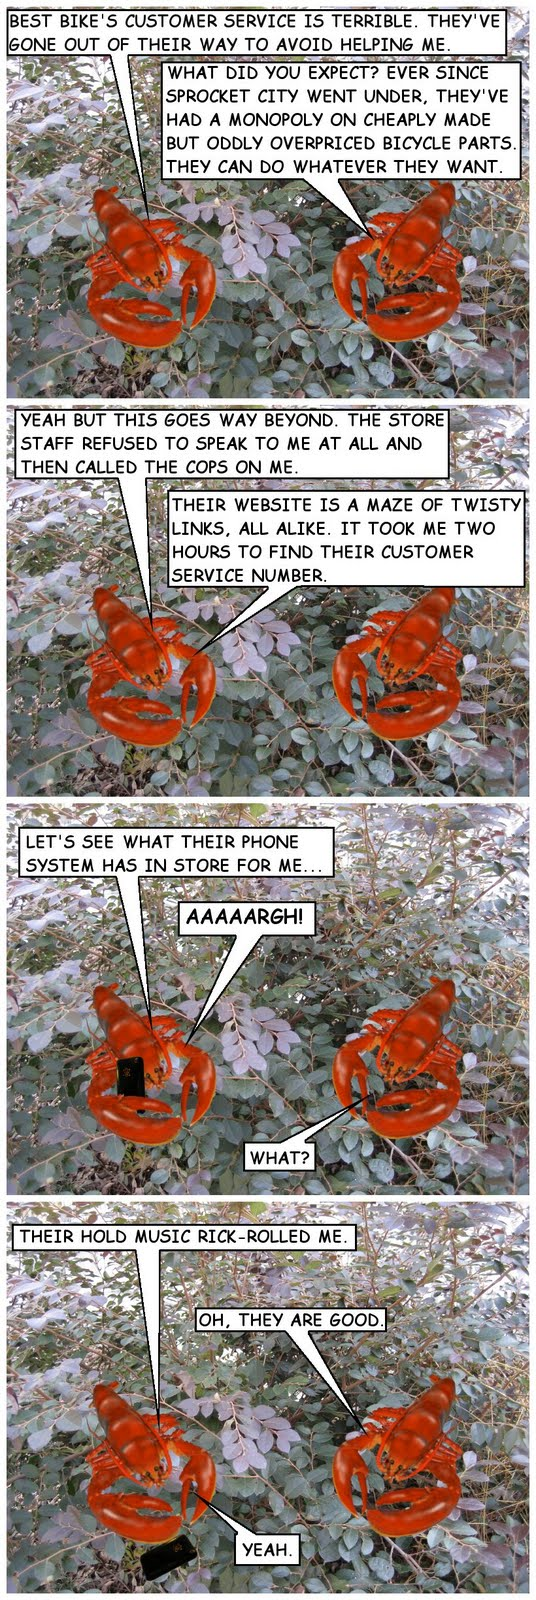 BEST BIKE'S CUSTOMER SERVICE IS TERRIBLE. THEY'VE GONE OUT OF THEIR WAY TO AVOID HELPING ME. WHAT DID YOU EXPECT? EVER SINCE SPROCKET CITY WENT UNDER, THEY'VE HAD A MONOPOLY ON CHEAPLY MADE BUT ODDLY OVERPRICED BICYCLE PARTS. THEY CAN DO WHATEVER THEY WANT.  YEAH BUT THIS GOES WAY BEYOND. THE STORE STAFF REFUSED TO SPEAK TO ME AT ALL AND THEN CALLED THE COPS ON ME. THEIR WEBSITE IS A MAZE OF TWISTY LINKS, ALL ALIKE. IT TOOK ME TWO HOURS TO FIND THEIR CUSTOMER SERVICE NUMBER.   LET'S SEE WHAT THEIR PHONE SYSTEM HAS IN STORE FOR ME... AAAAARGH! WHAT?  THEIR HOLD MUSIC RICK-ROLLED ME. OH, THEY ARE GOOD. YEAH.